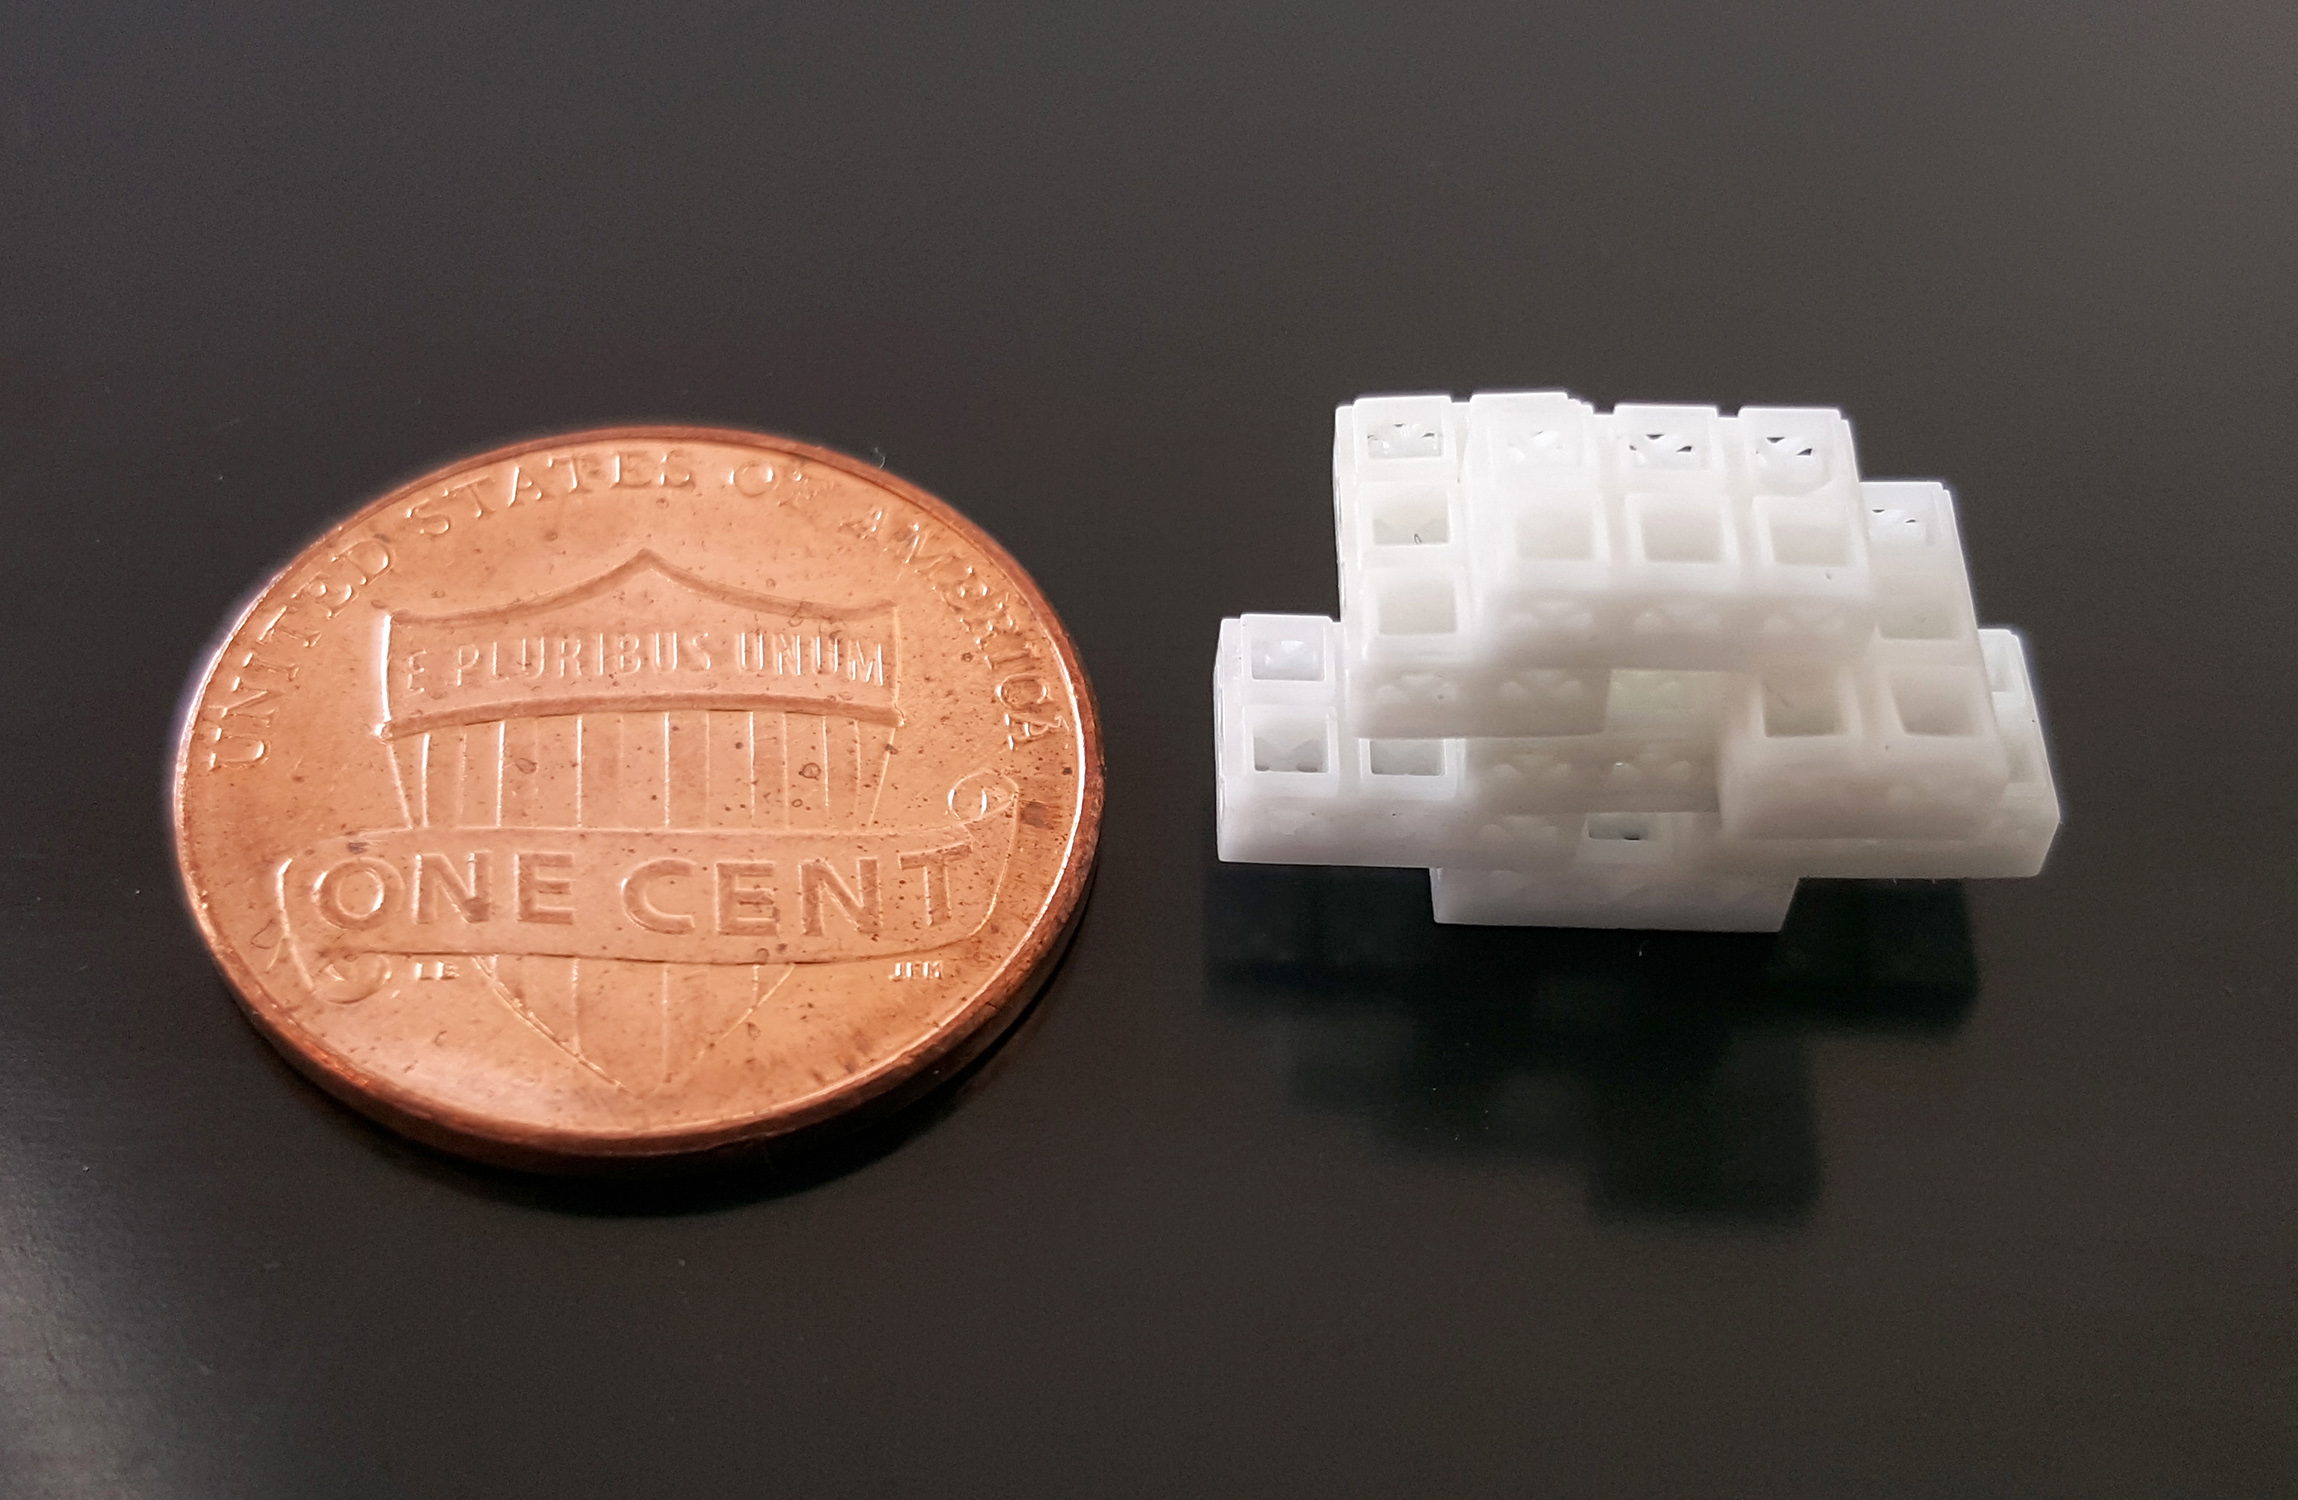 Each brick (pictured) was 1.5 millimeters cubed in size, or around the area of a small flea. Photo via OHSU.